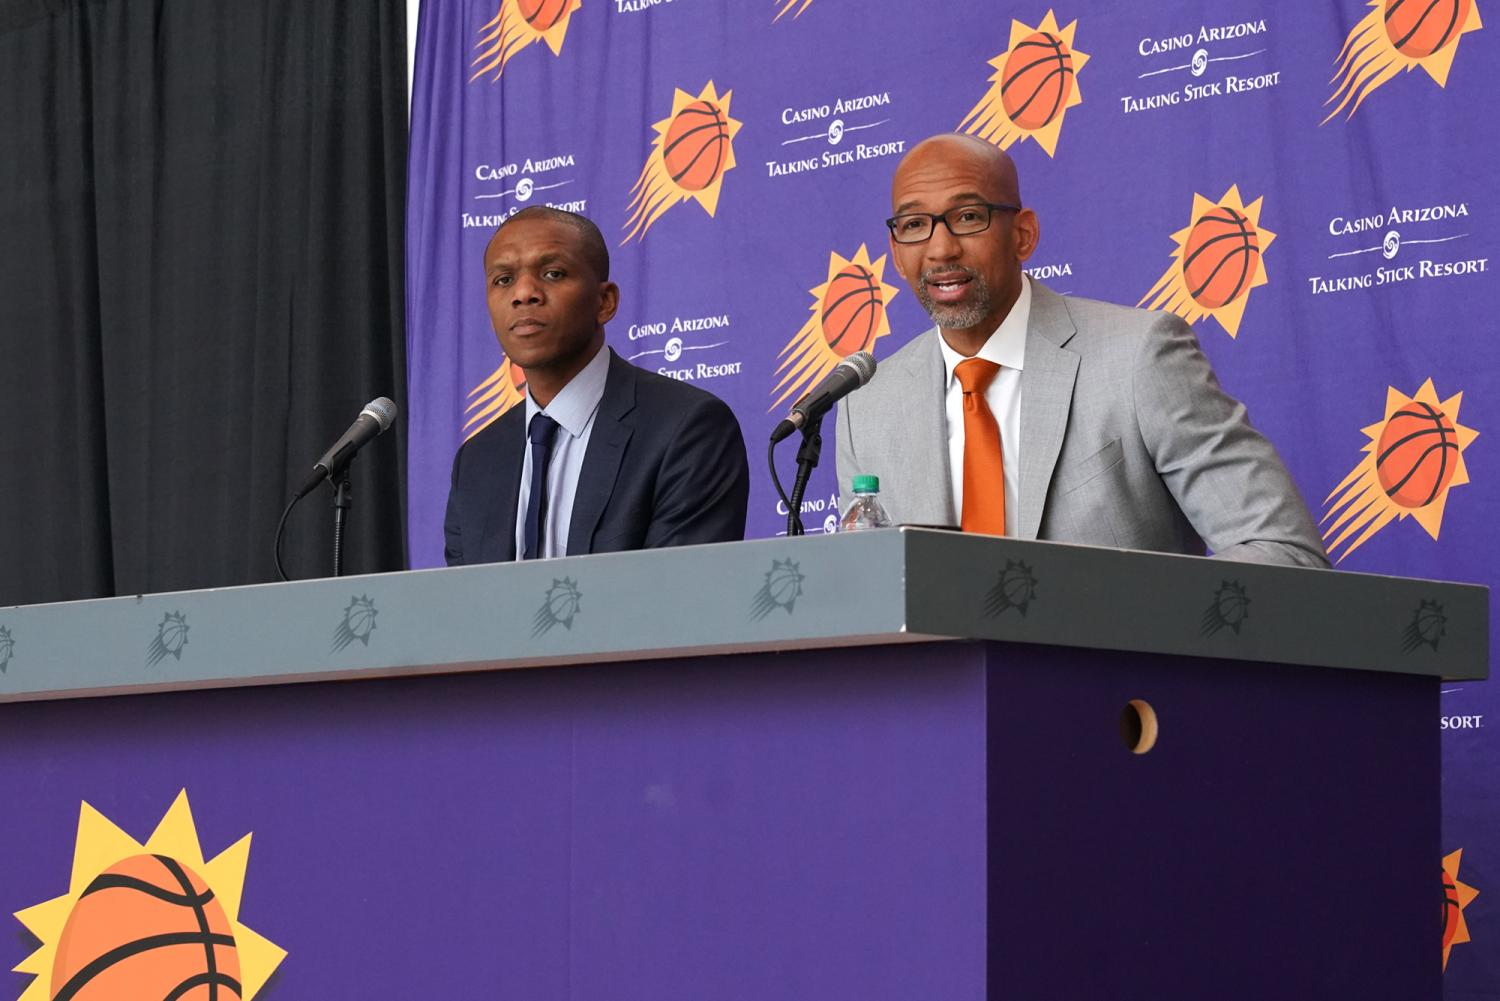 Phoenix Suns Monty Williams